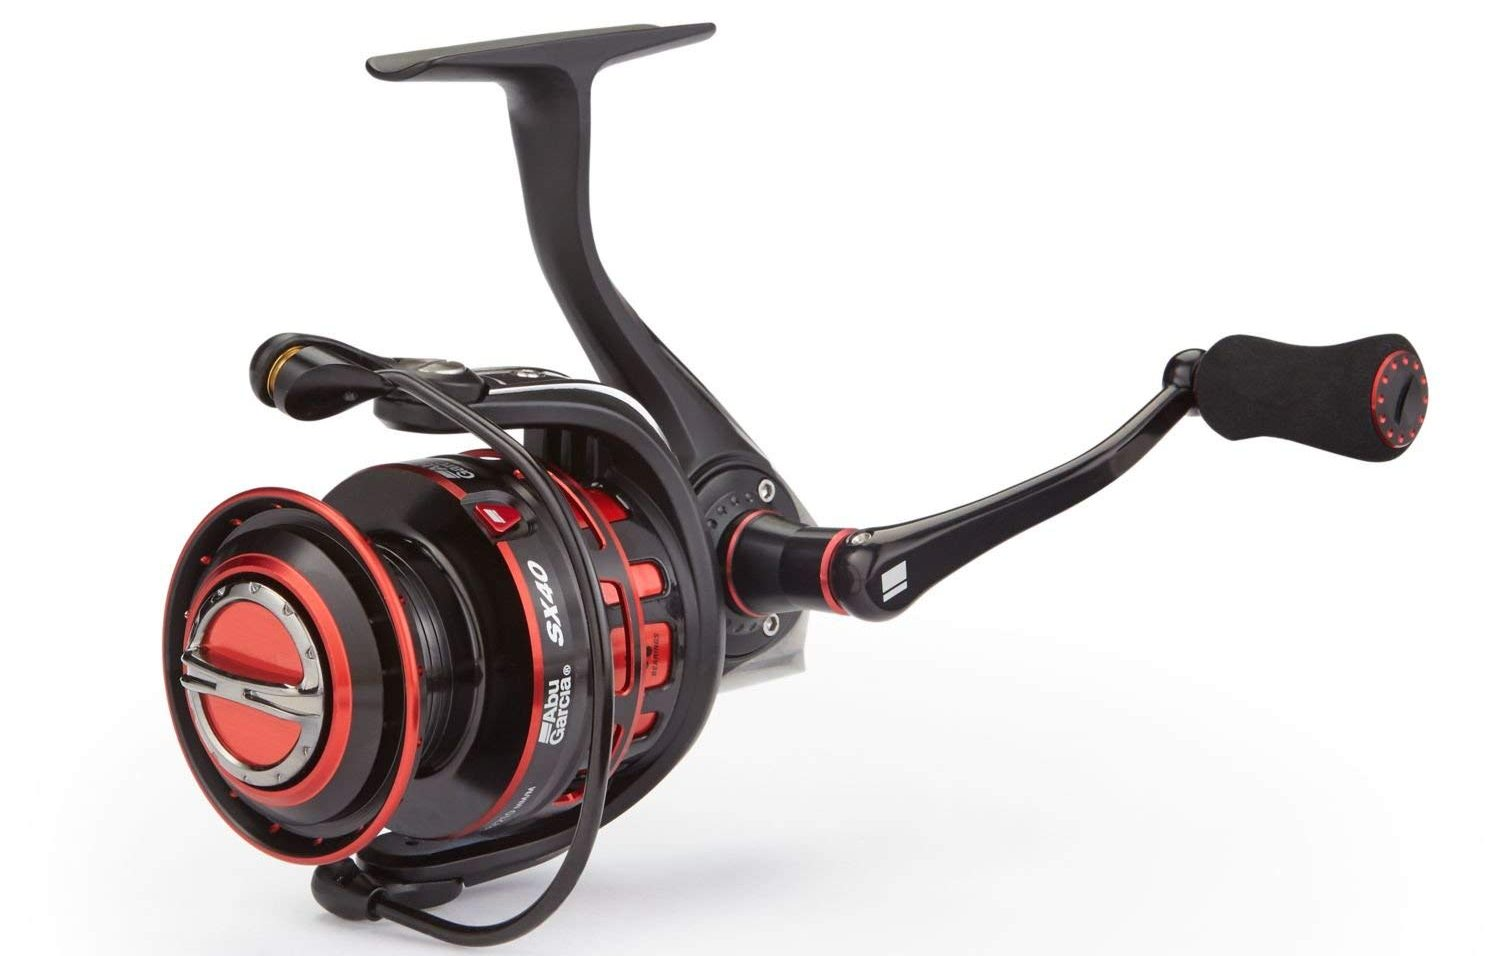 Abu Garcia Revo SX 30 Spinning Reel review